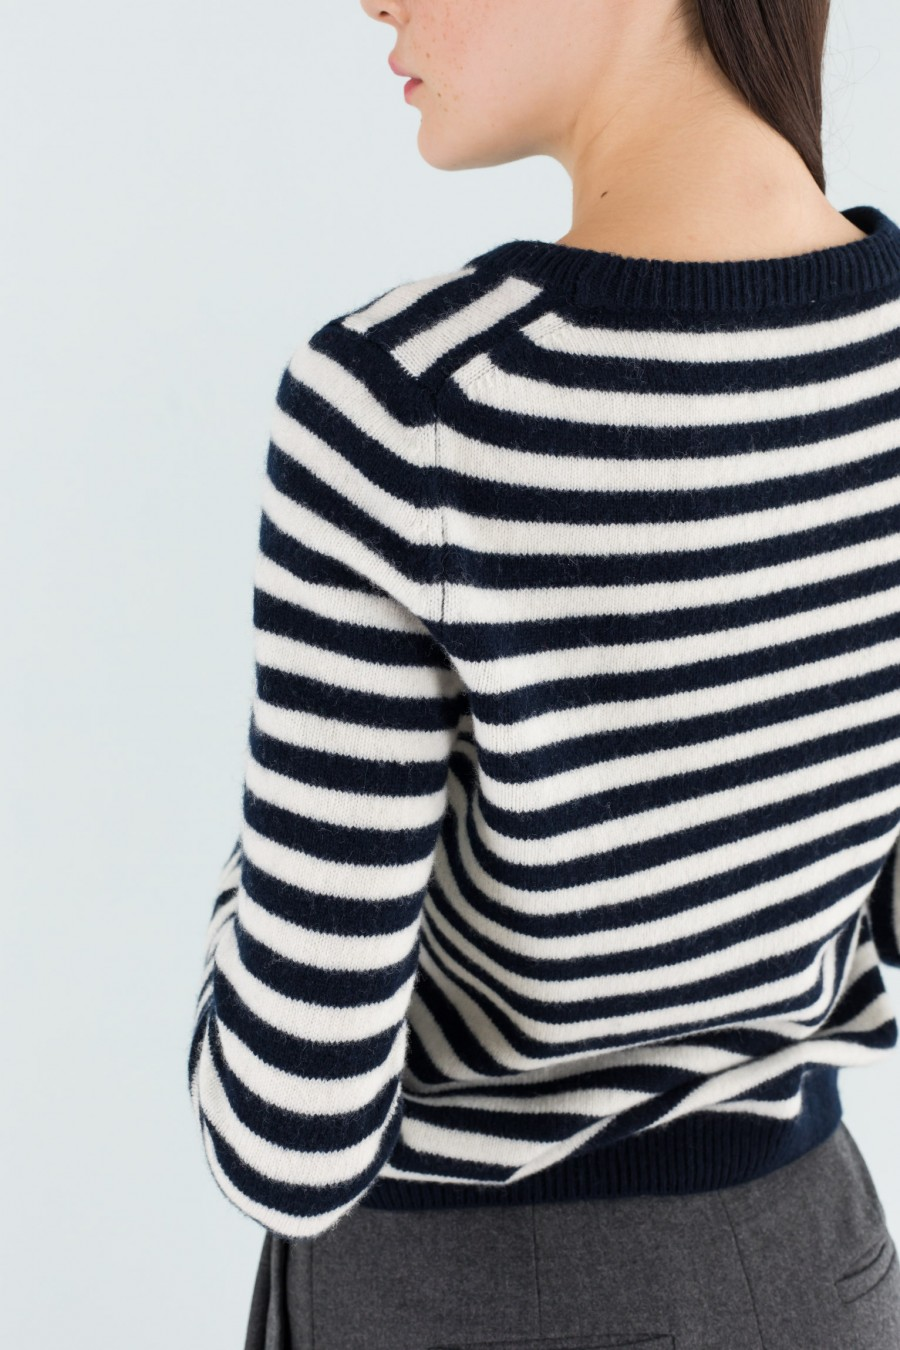 Black and white striped pullover